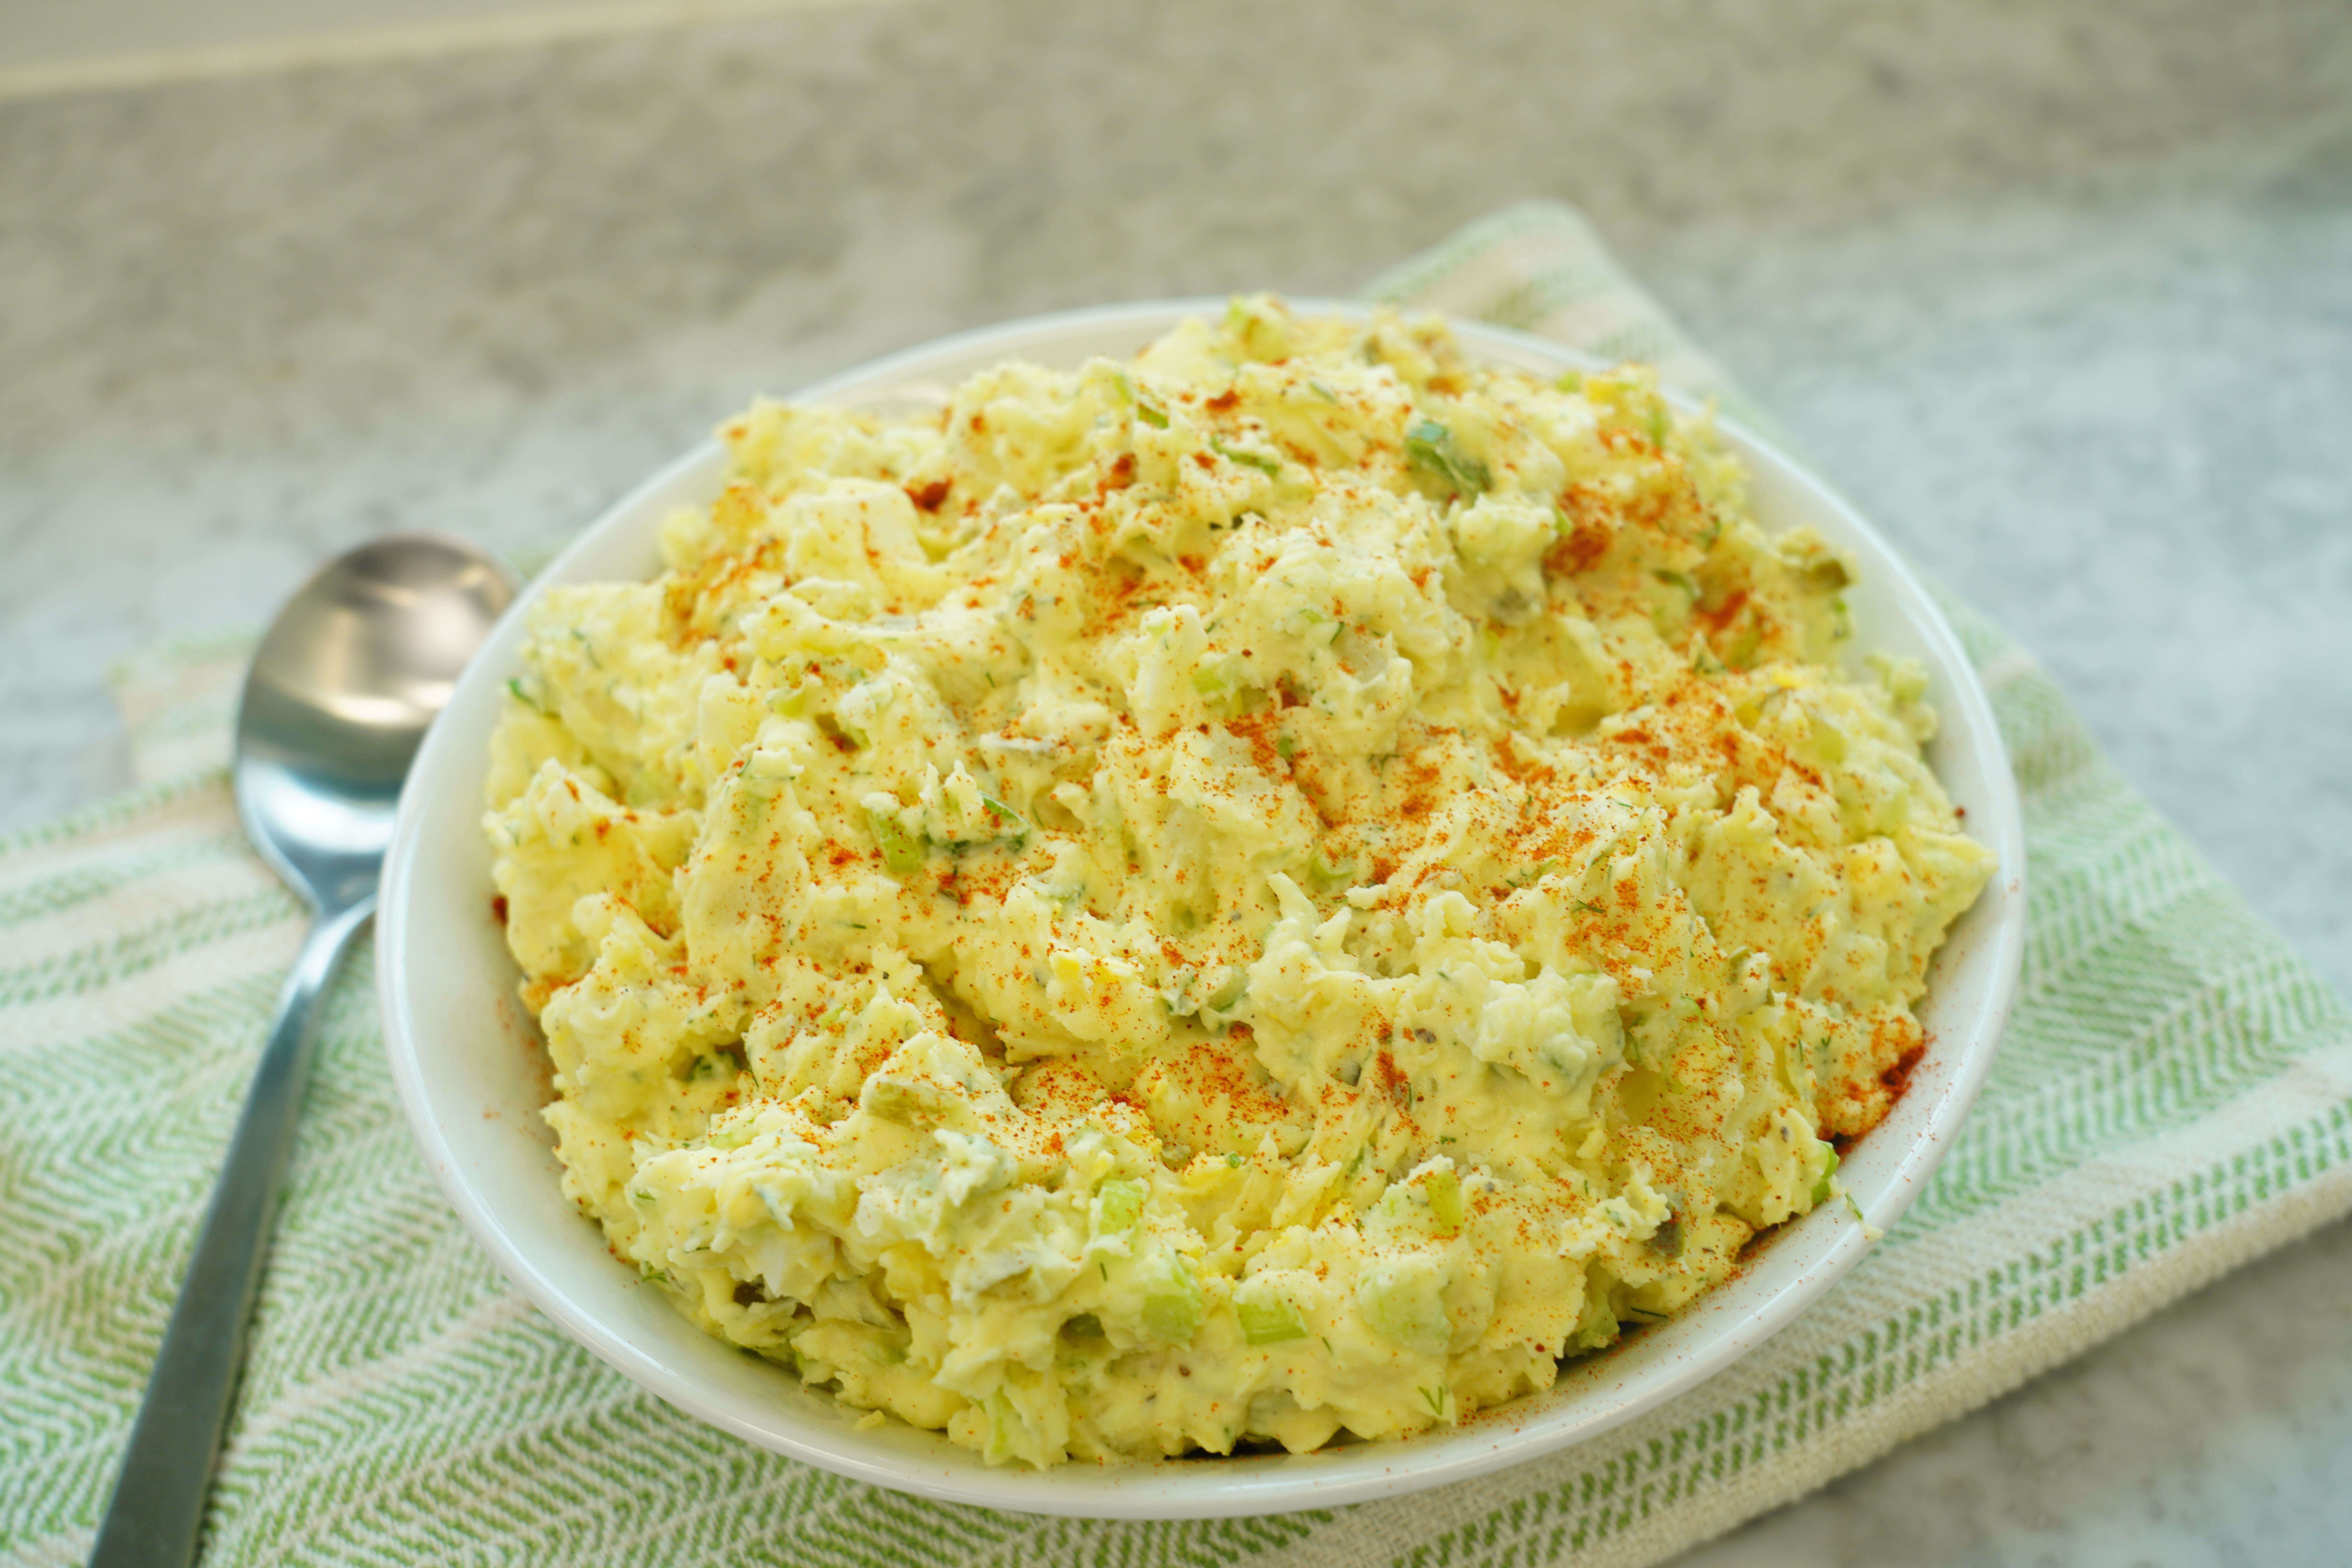 Best Classic Potato Salad Trusted Brands